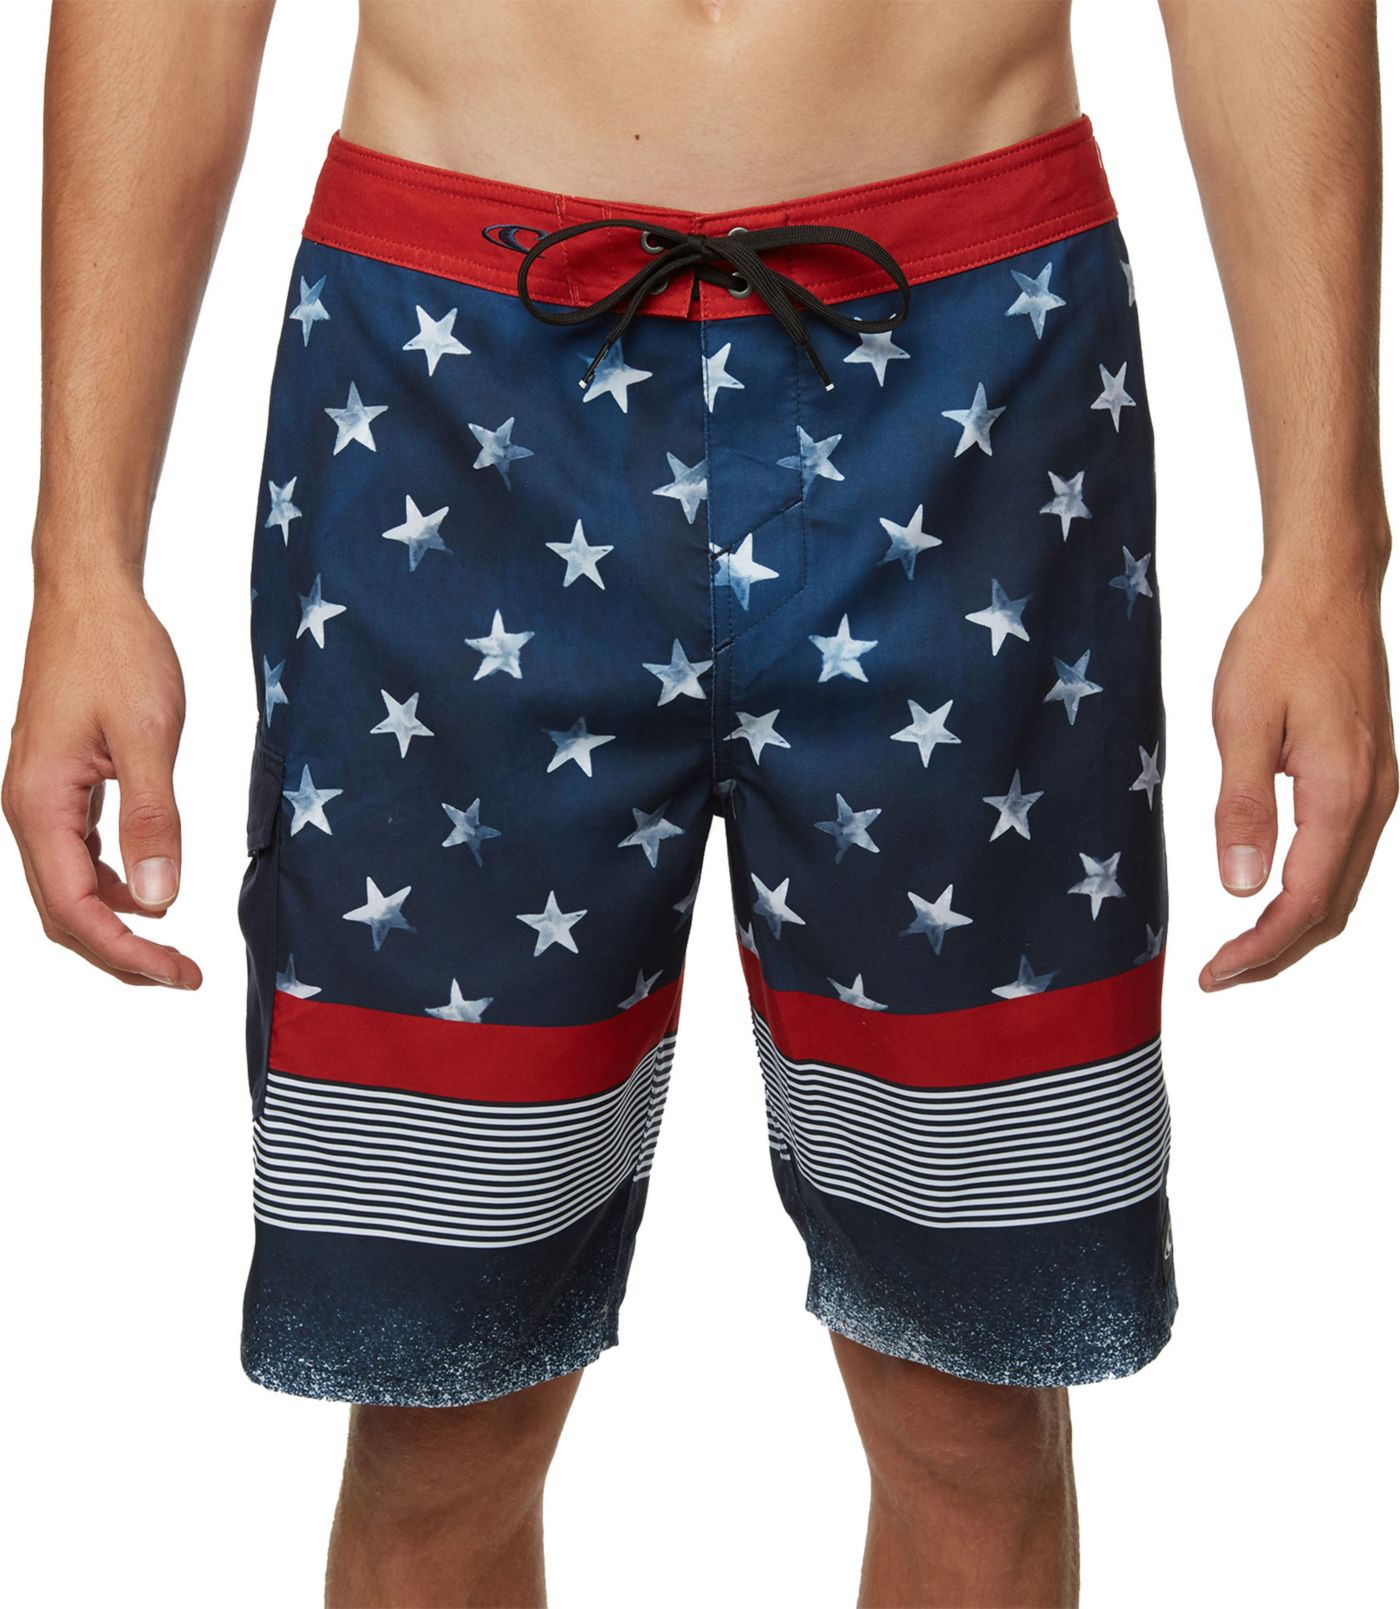 O'Neill Men's Star N Stripes Board Shorts